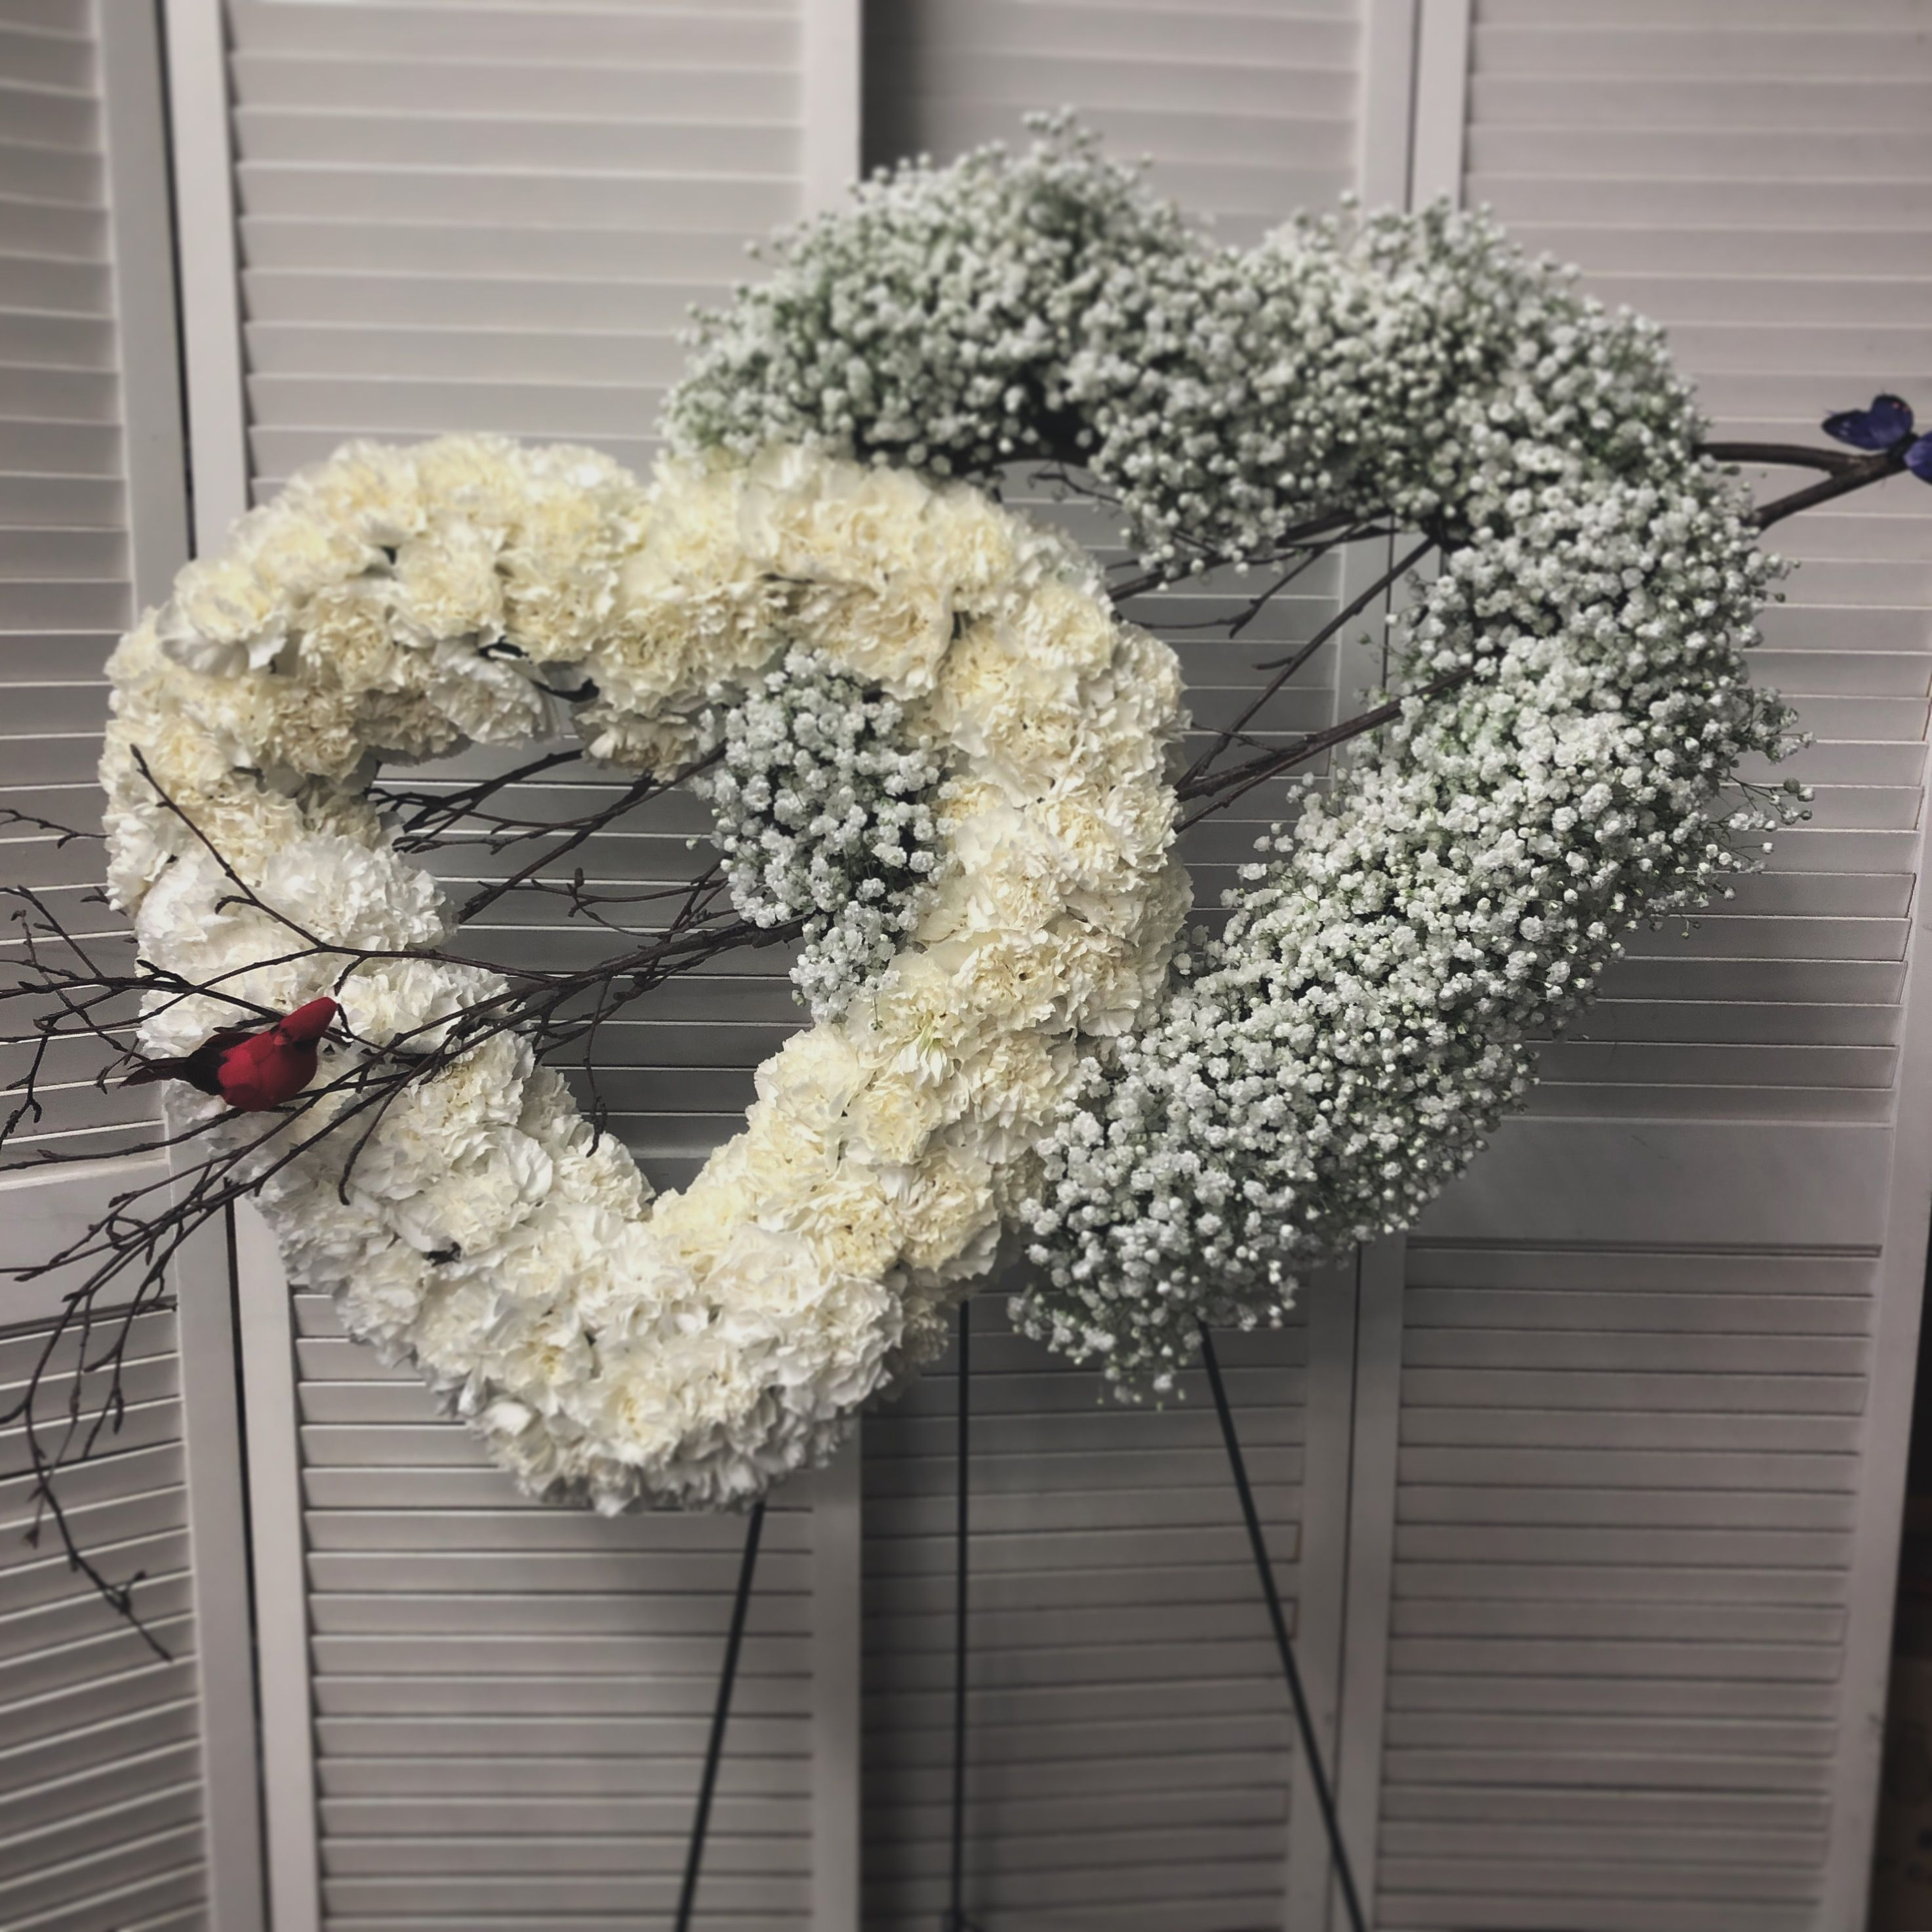 Pin by Locker's Florist on Memorial and Sympathy Flowers